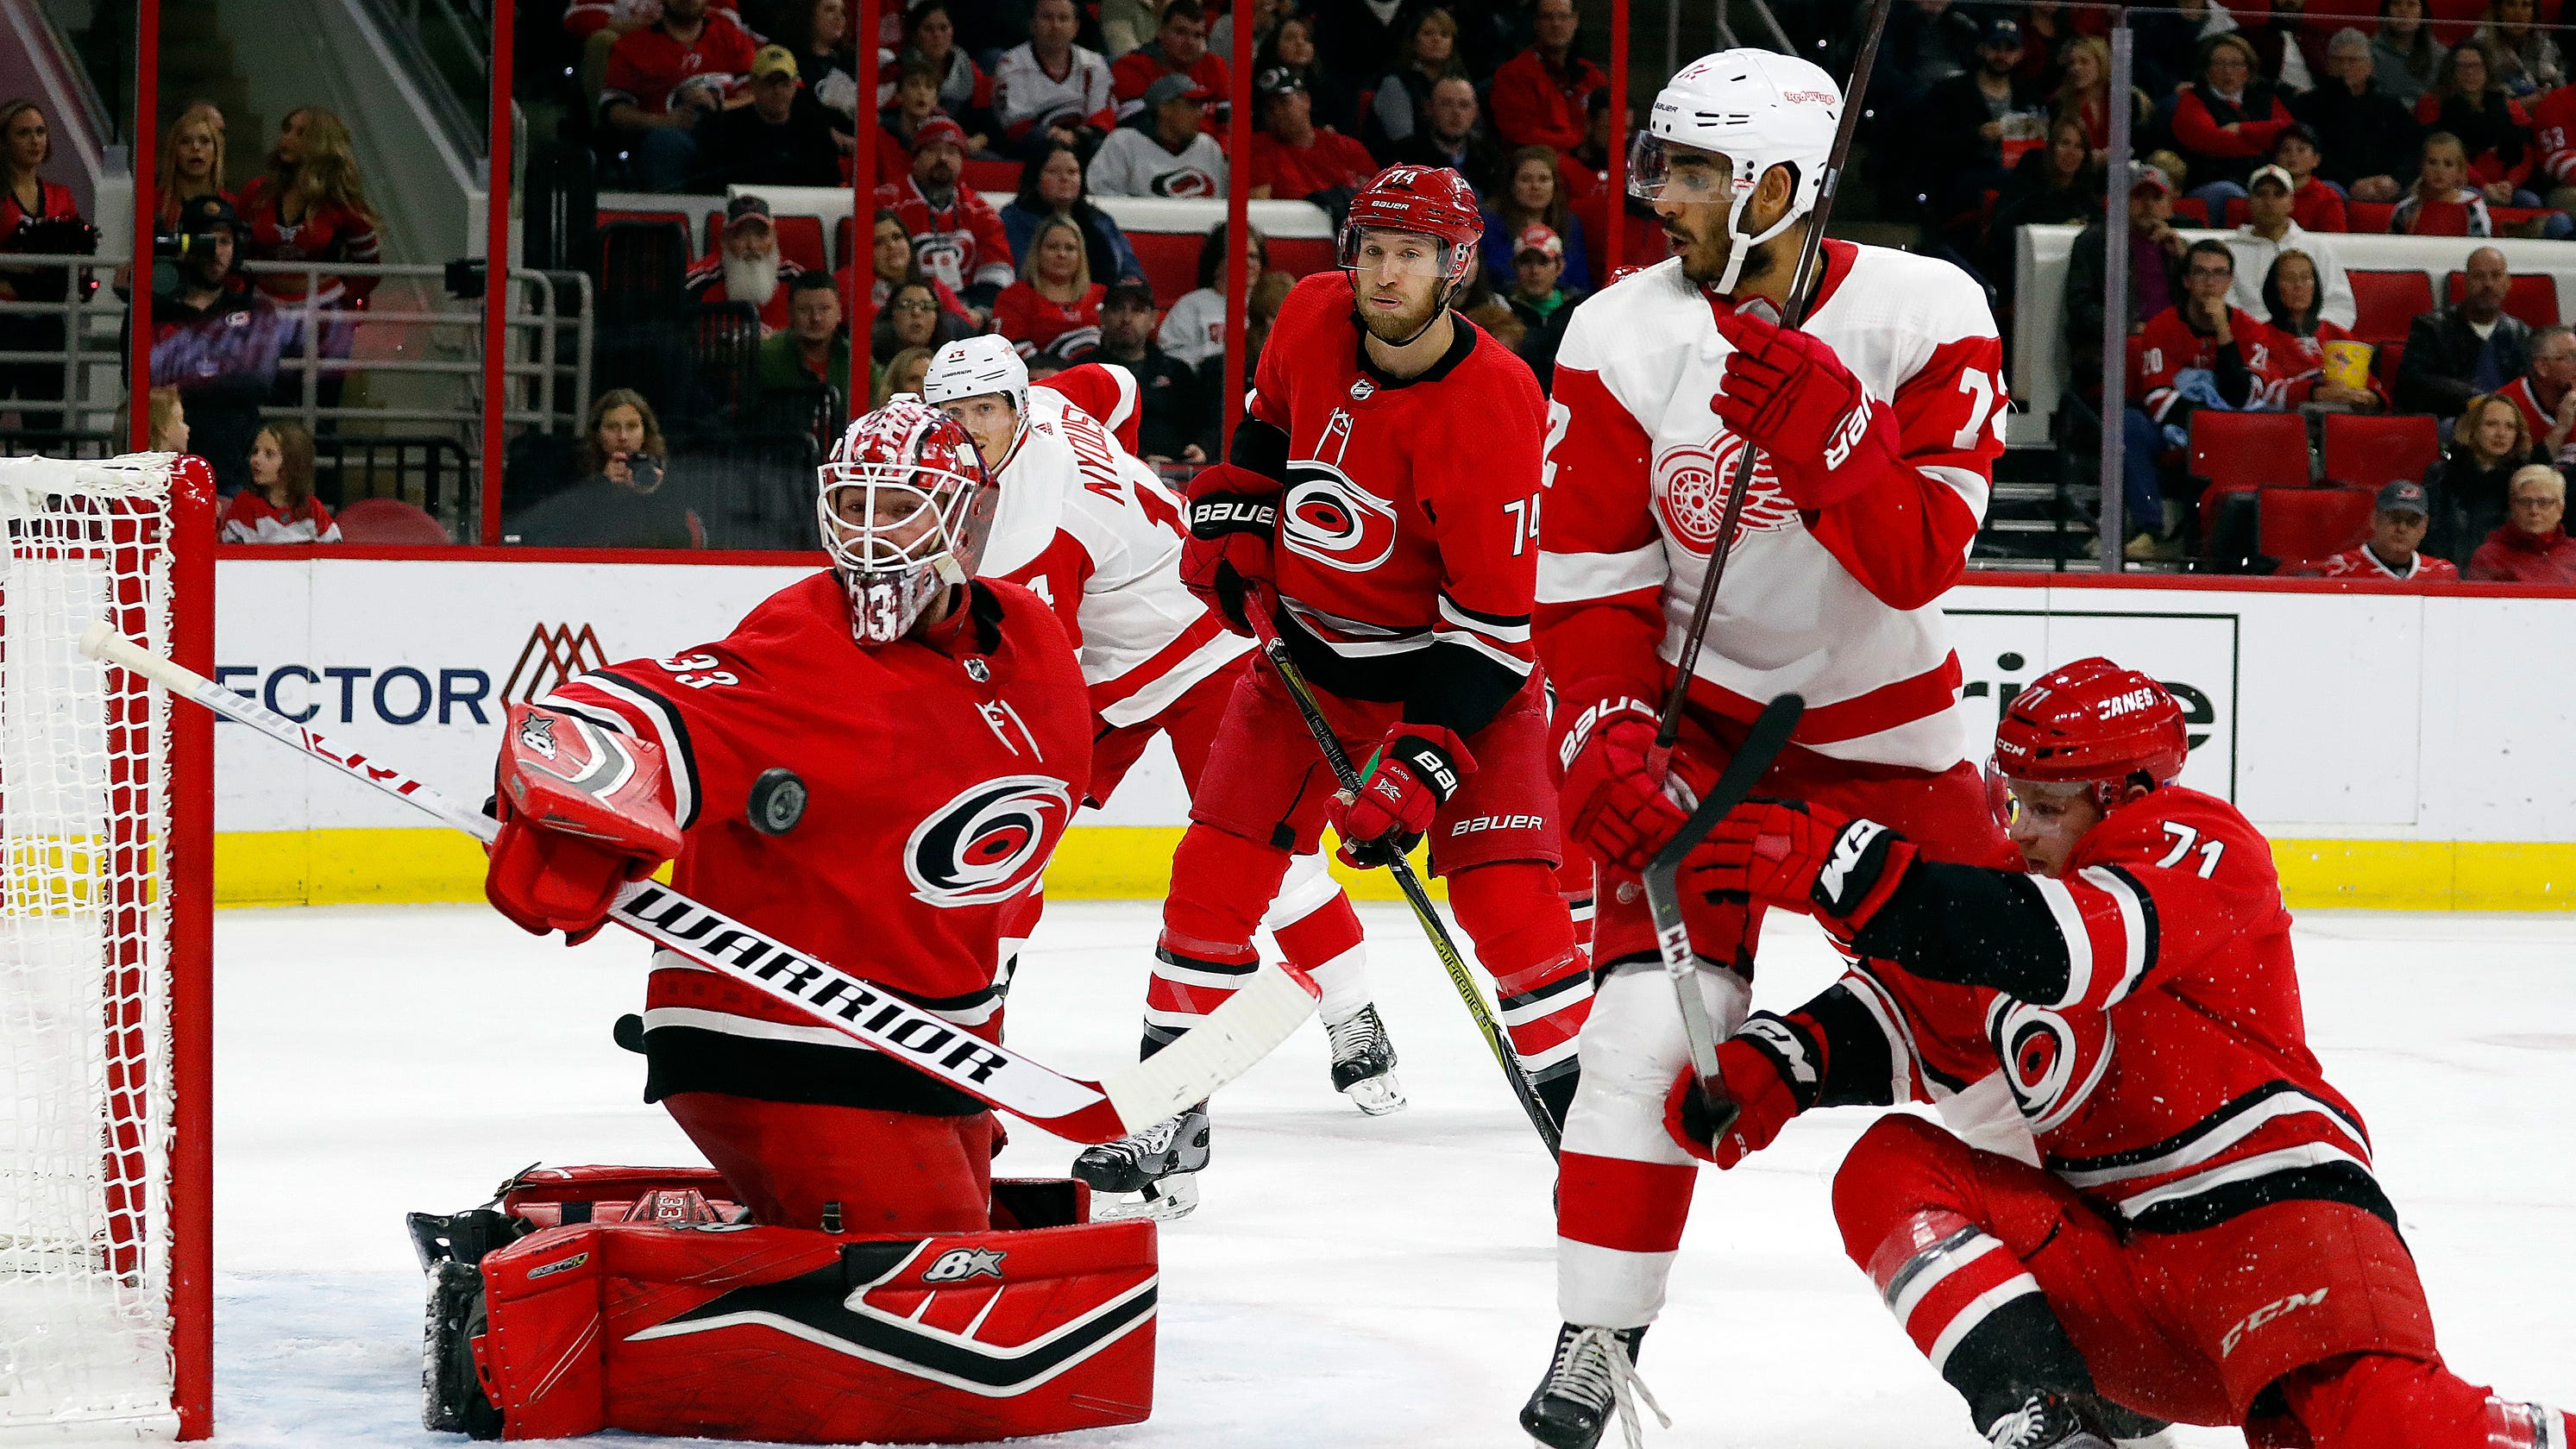 Detroit Red Wings surprise Hurricanes with rally, 4-3 SO win